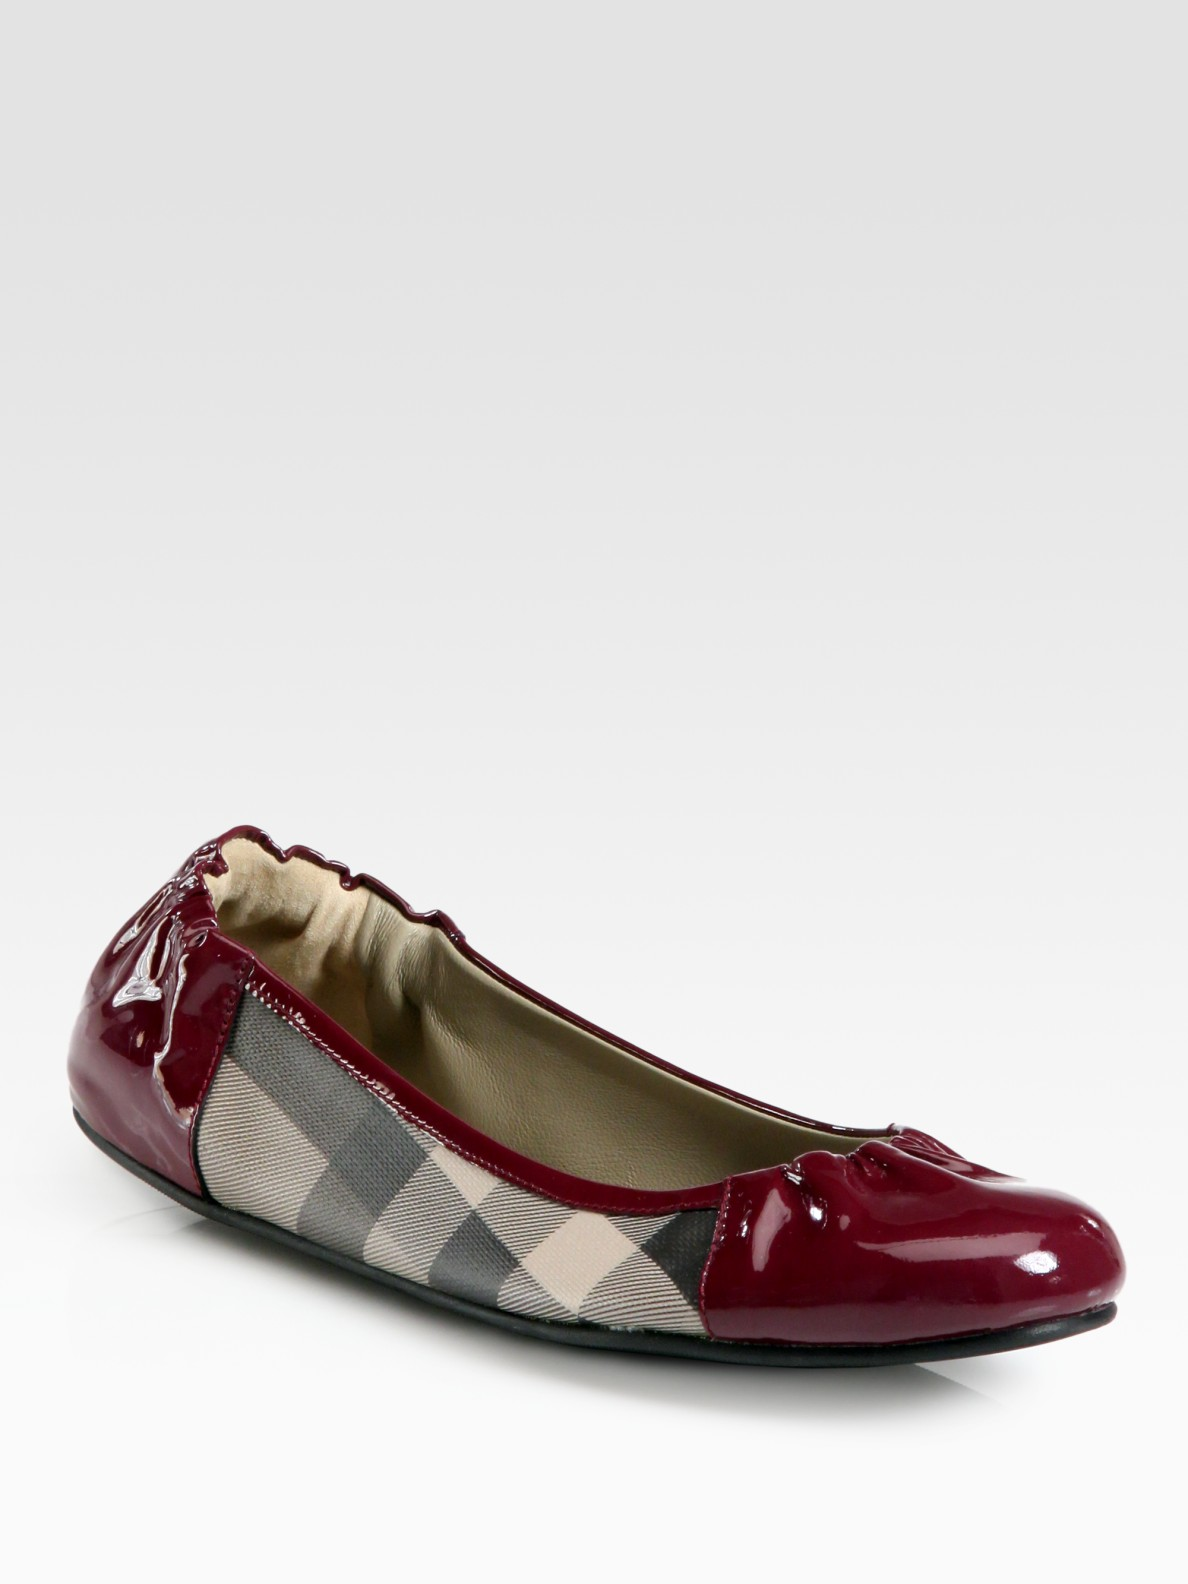 burberry smoked check canvas patent leather ballet flats